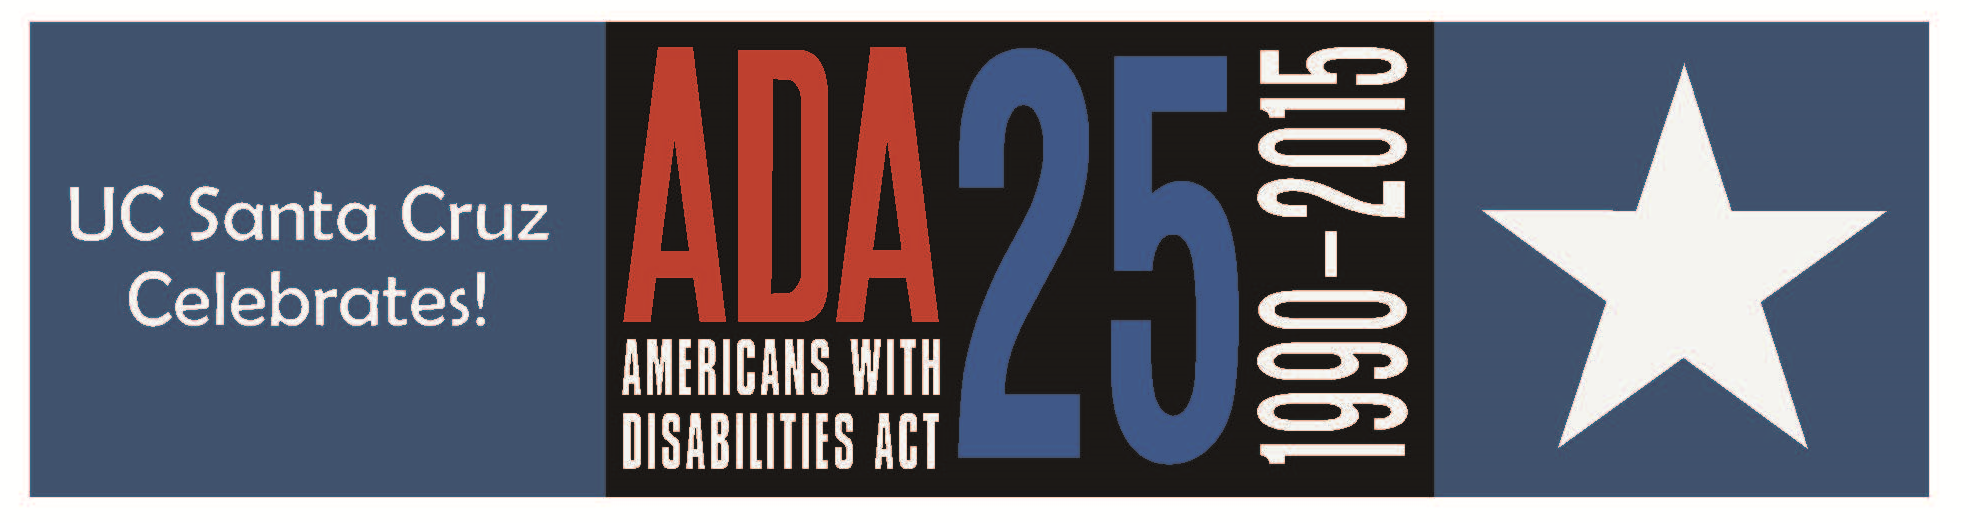 American Disabilities Act - Celebrating 25 Years